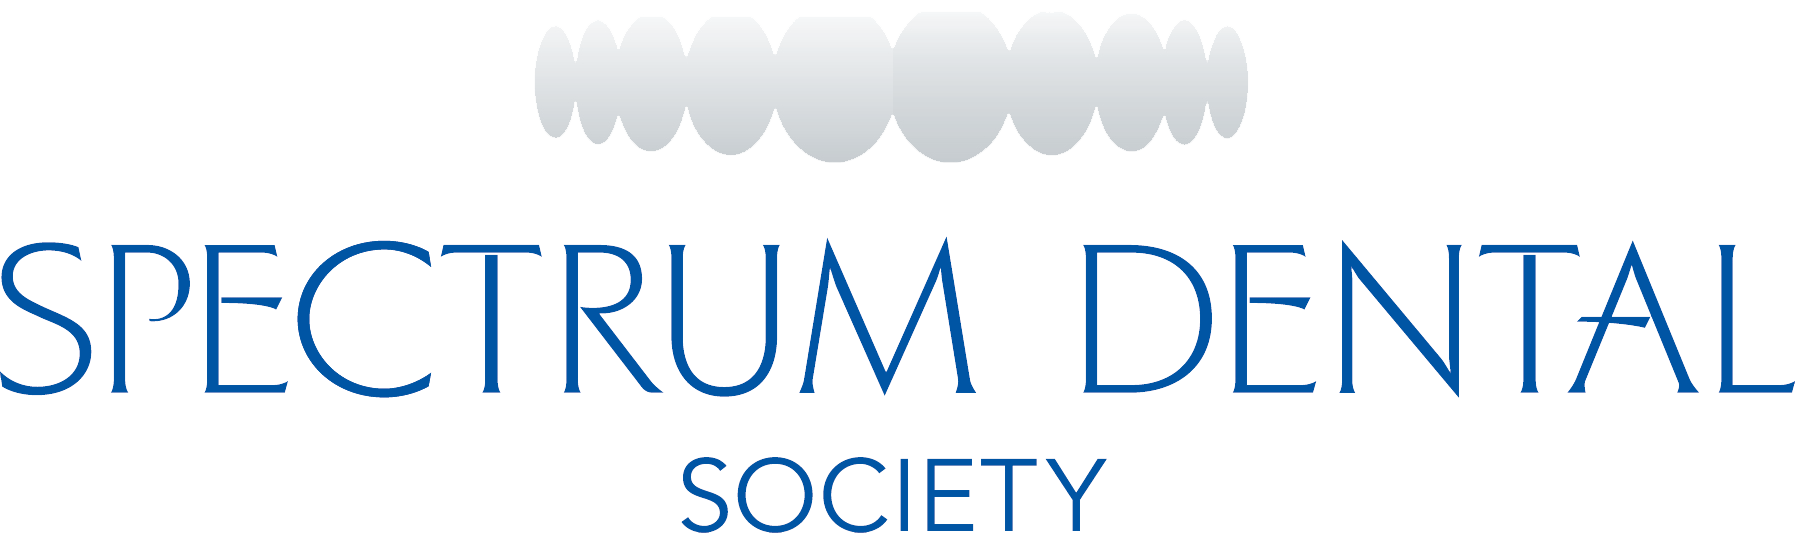 The Spectrum Dental Society logo